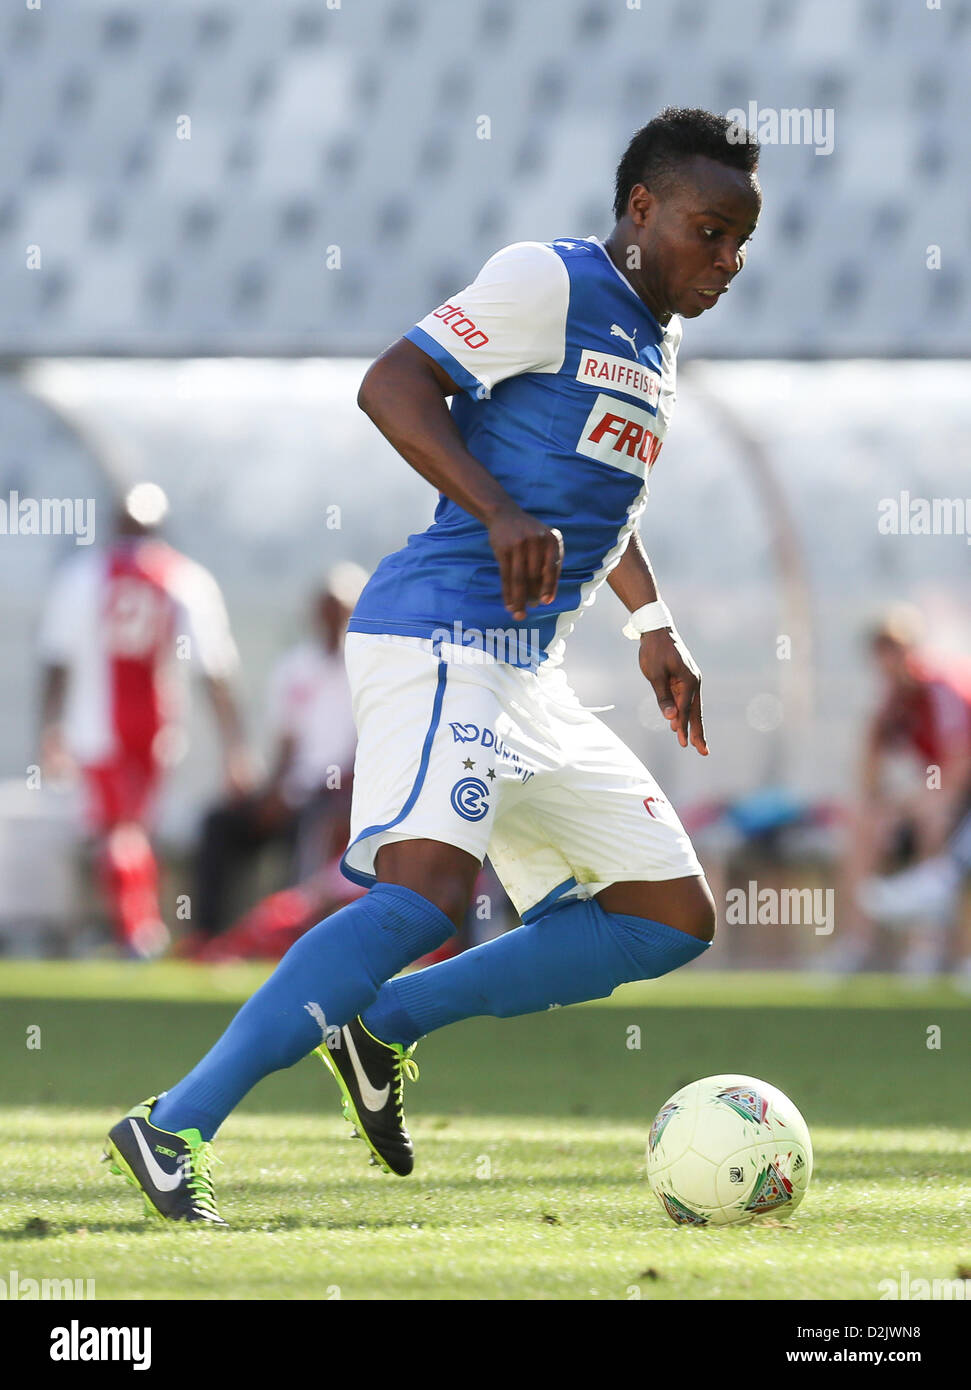 CAPE TOWN, South Africa - Saturday 26 January 2013, Nzuzi Toko of Grasshopper Club Zurich during the soccer/football - Stock Image